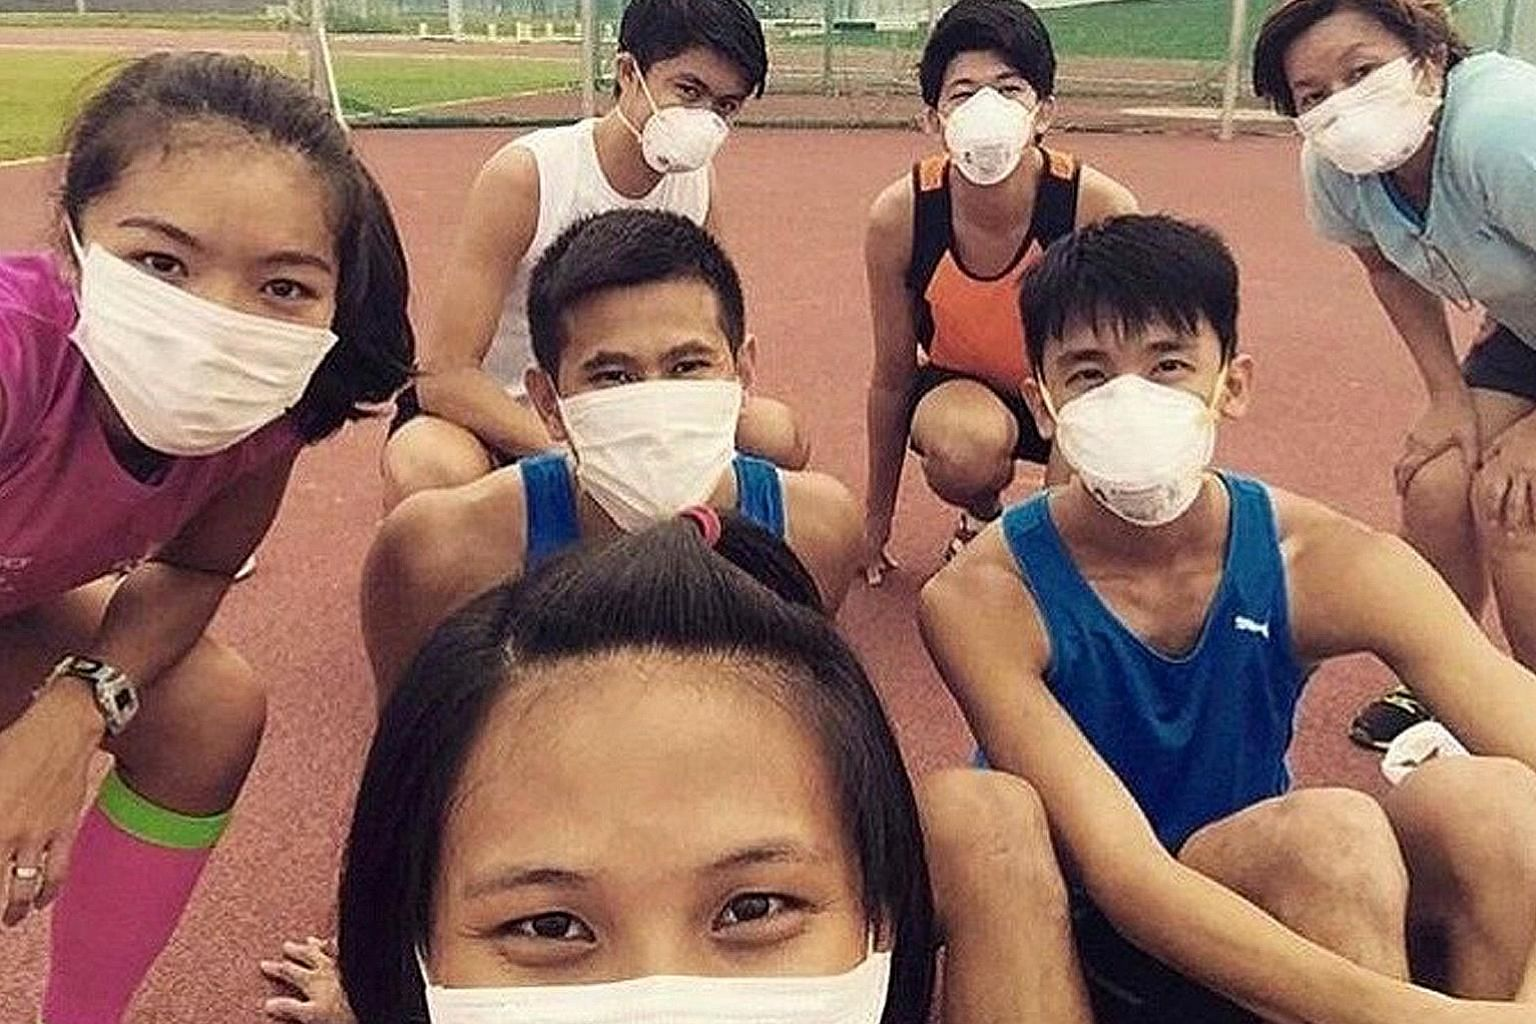 High jumper Michelle Sng (left) and her friends donned masks during their training sessions in 2015 when the haze situation was bad. PHOTO COURTESY OF MICHELLE SNG